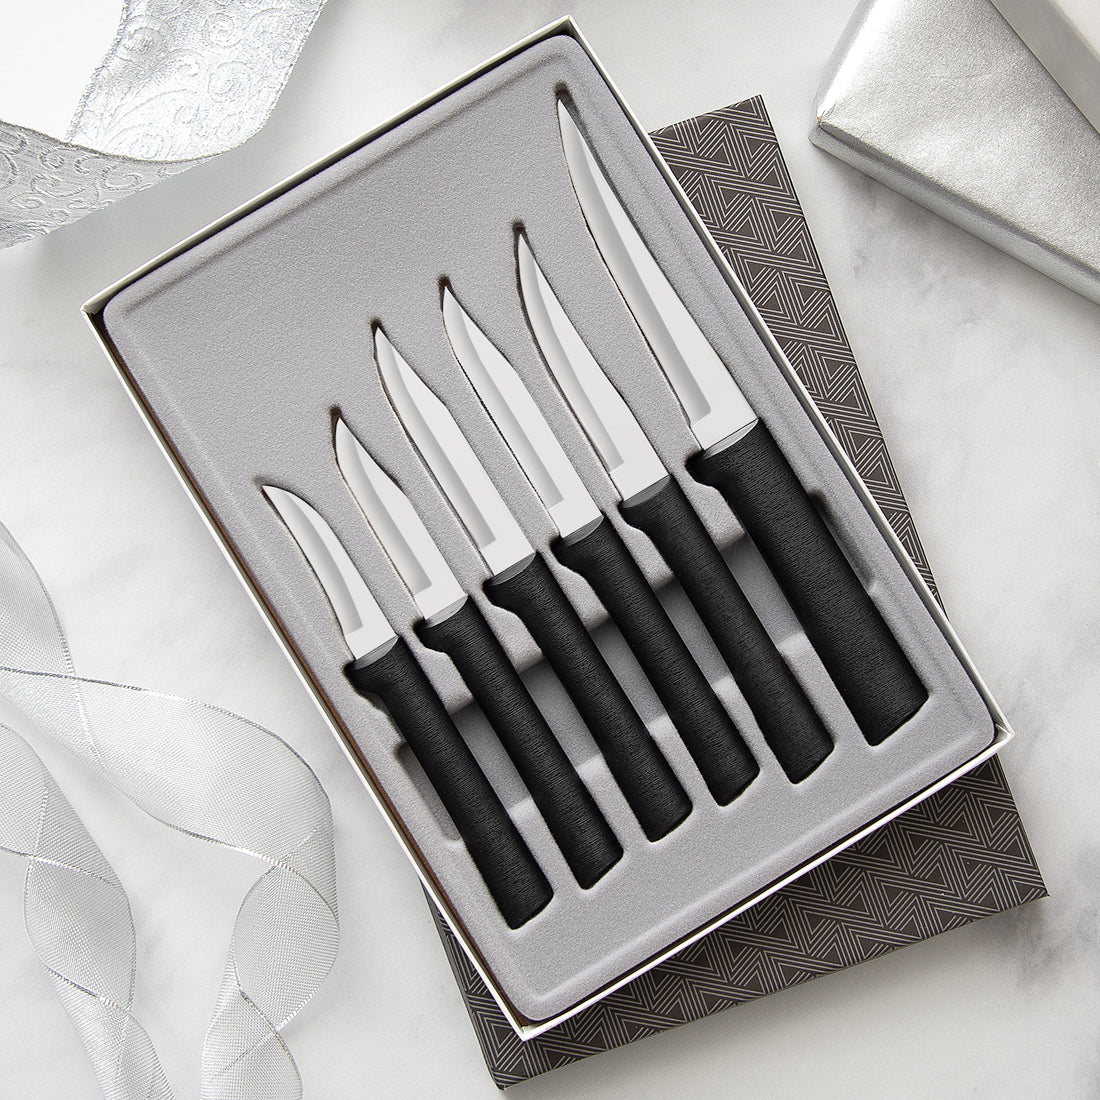 RADA CUTLERY S52 ALL STAR 6 PIECE PARING GIFT SET SILVER HANDLE MADE IN USA